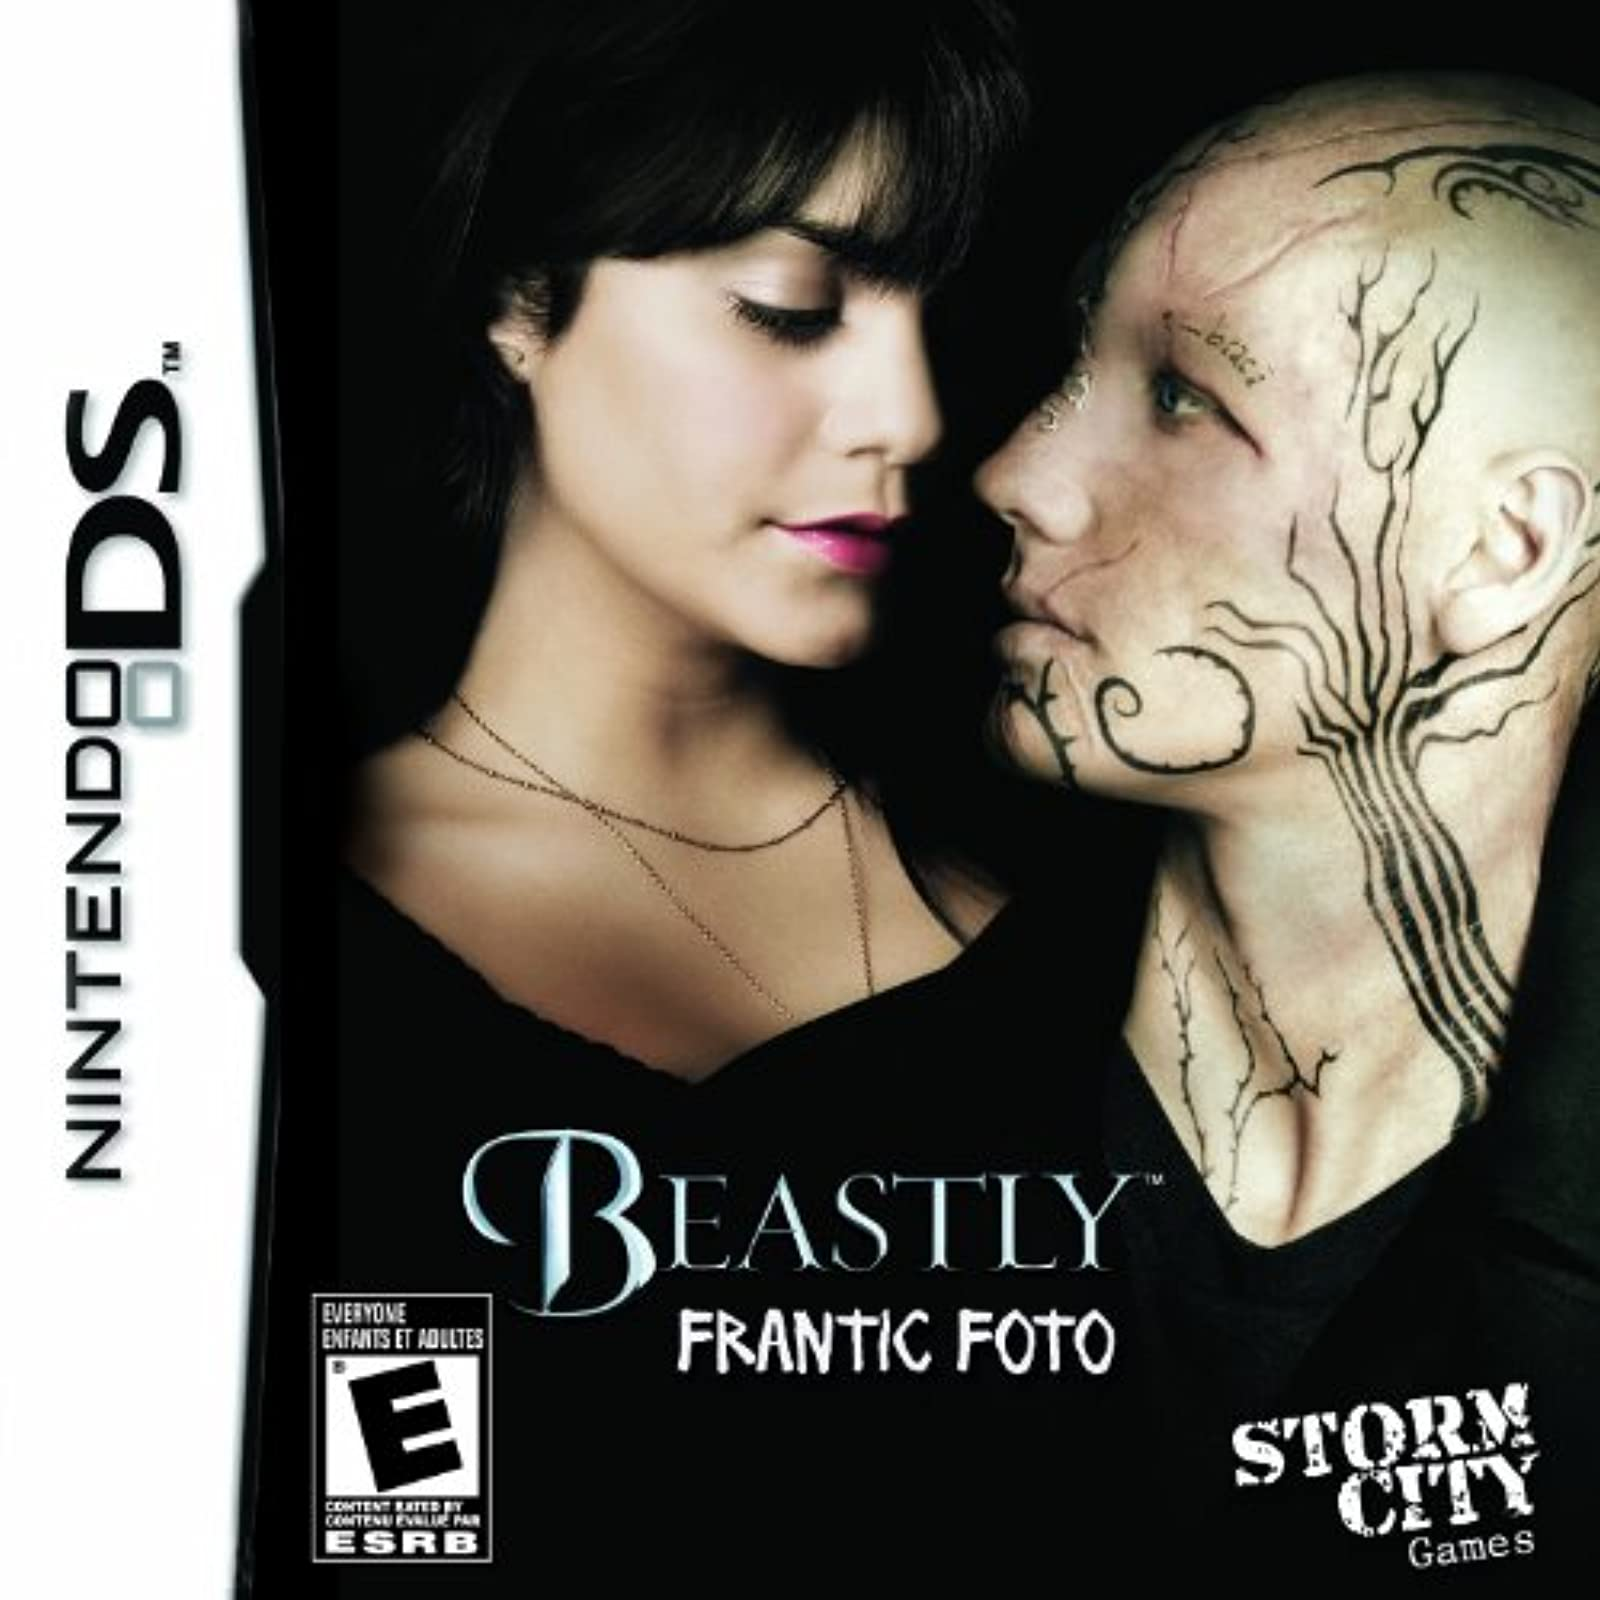 Beastly Frantic Foto For Nintendo DS DSi 3DS 2DS